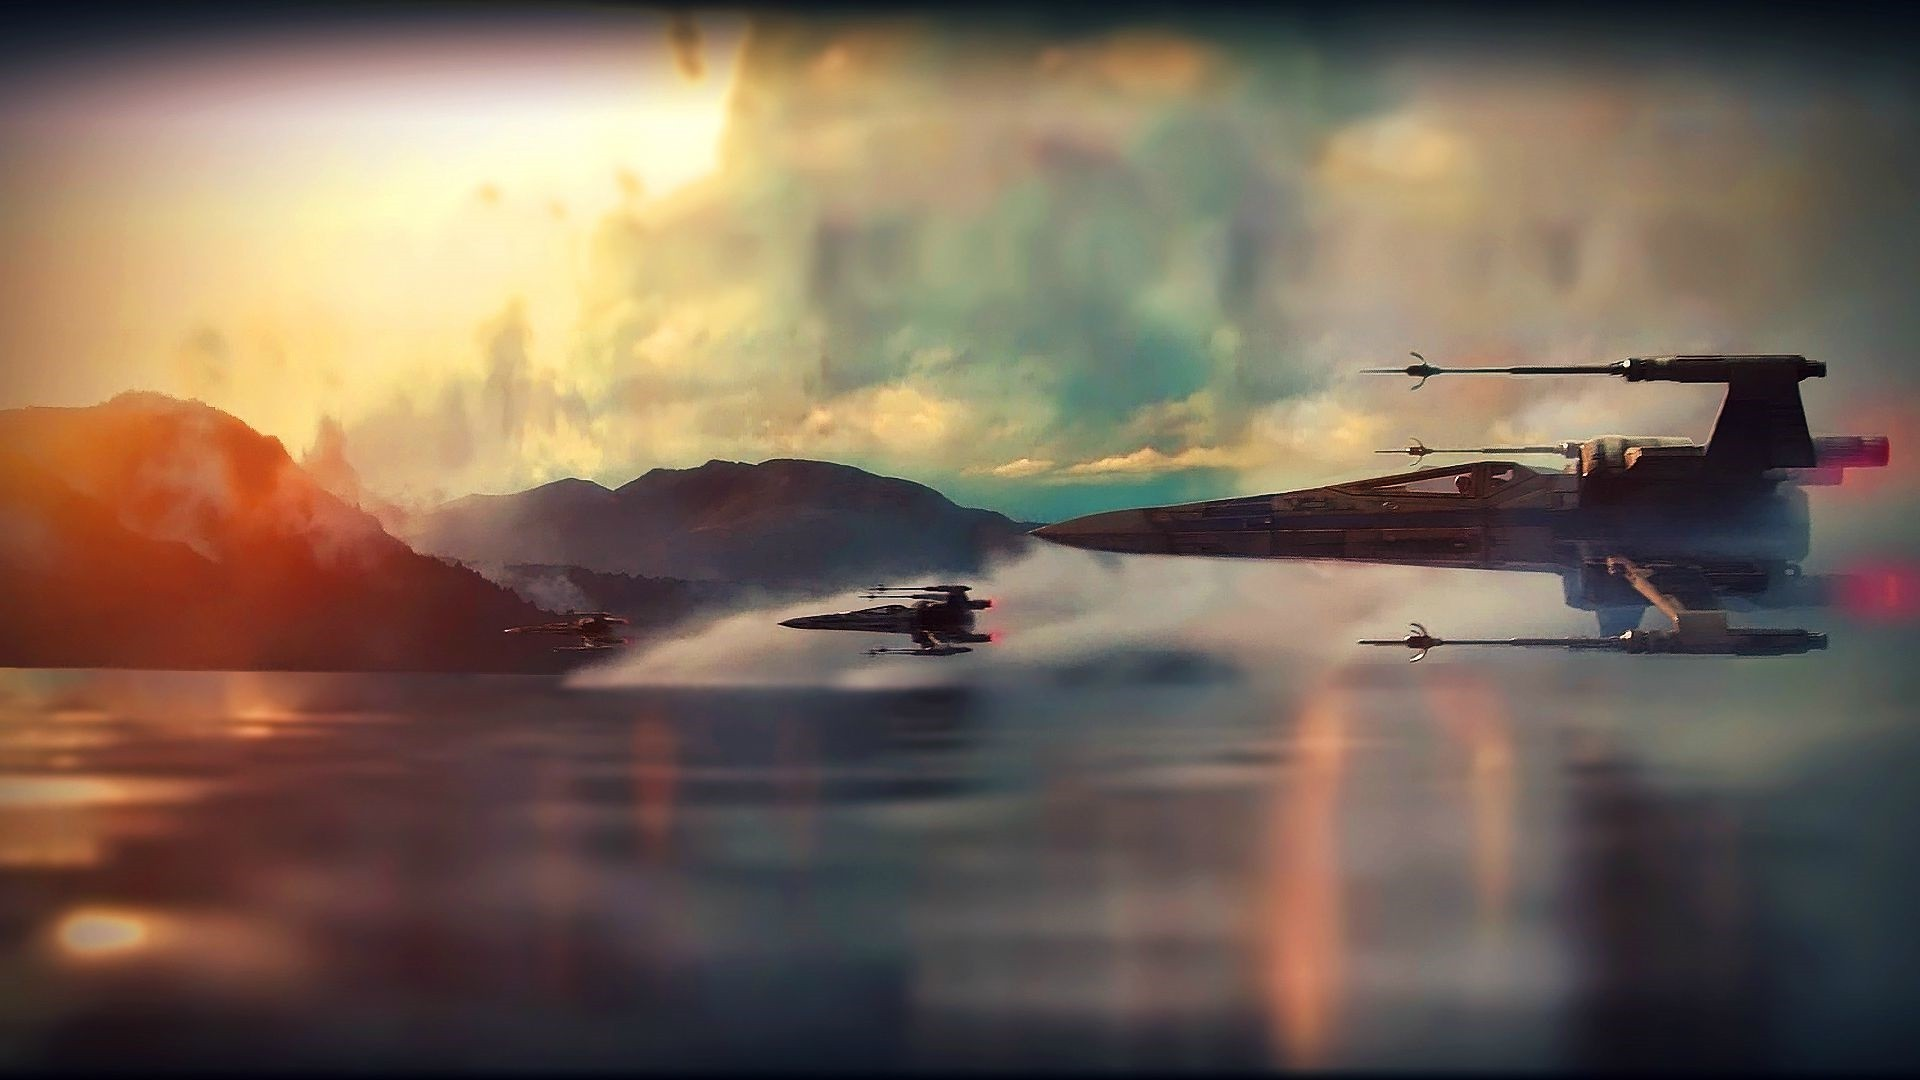 The Force Awakens Wallpaper 1920x1080 Download Free Awesome